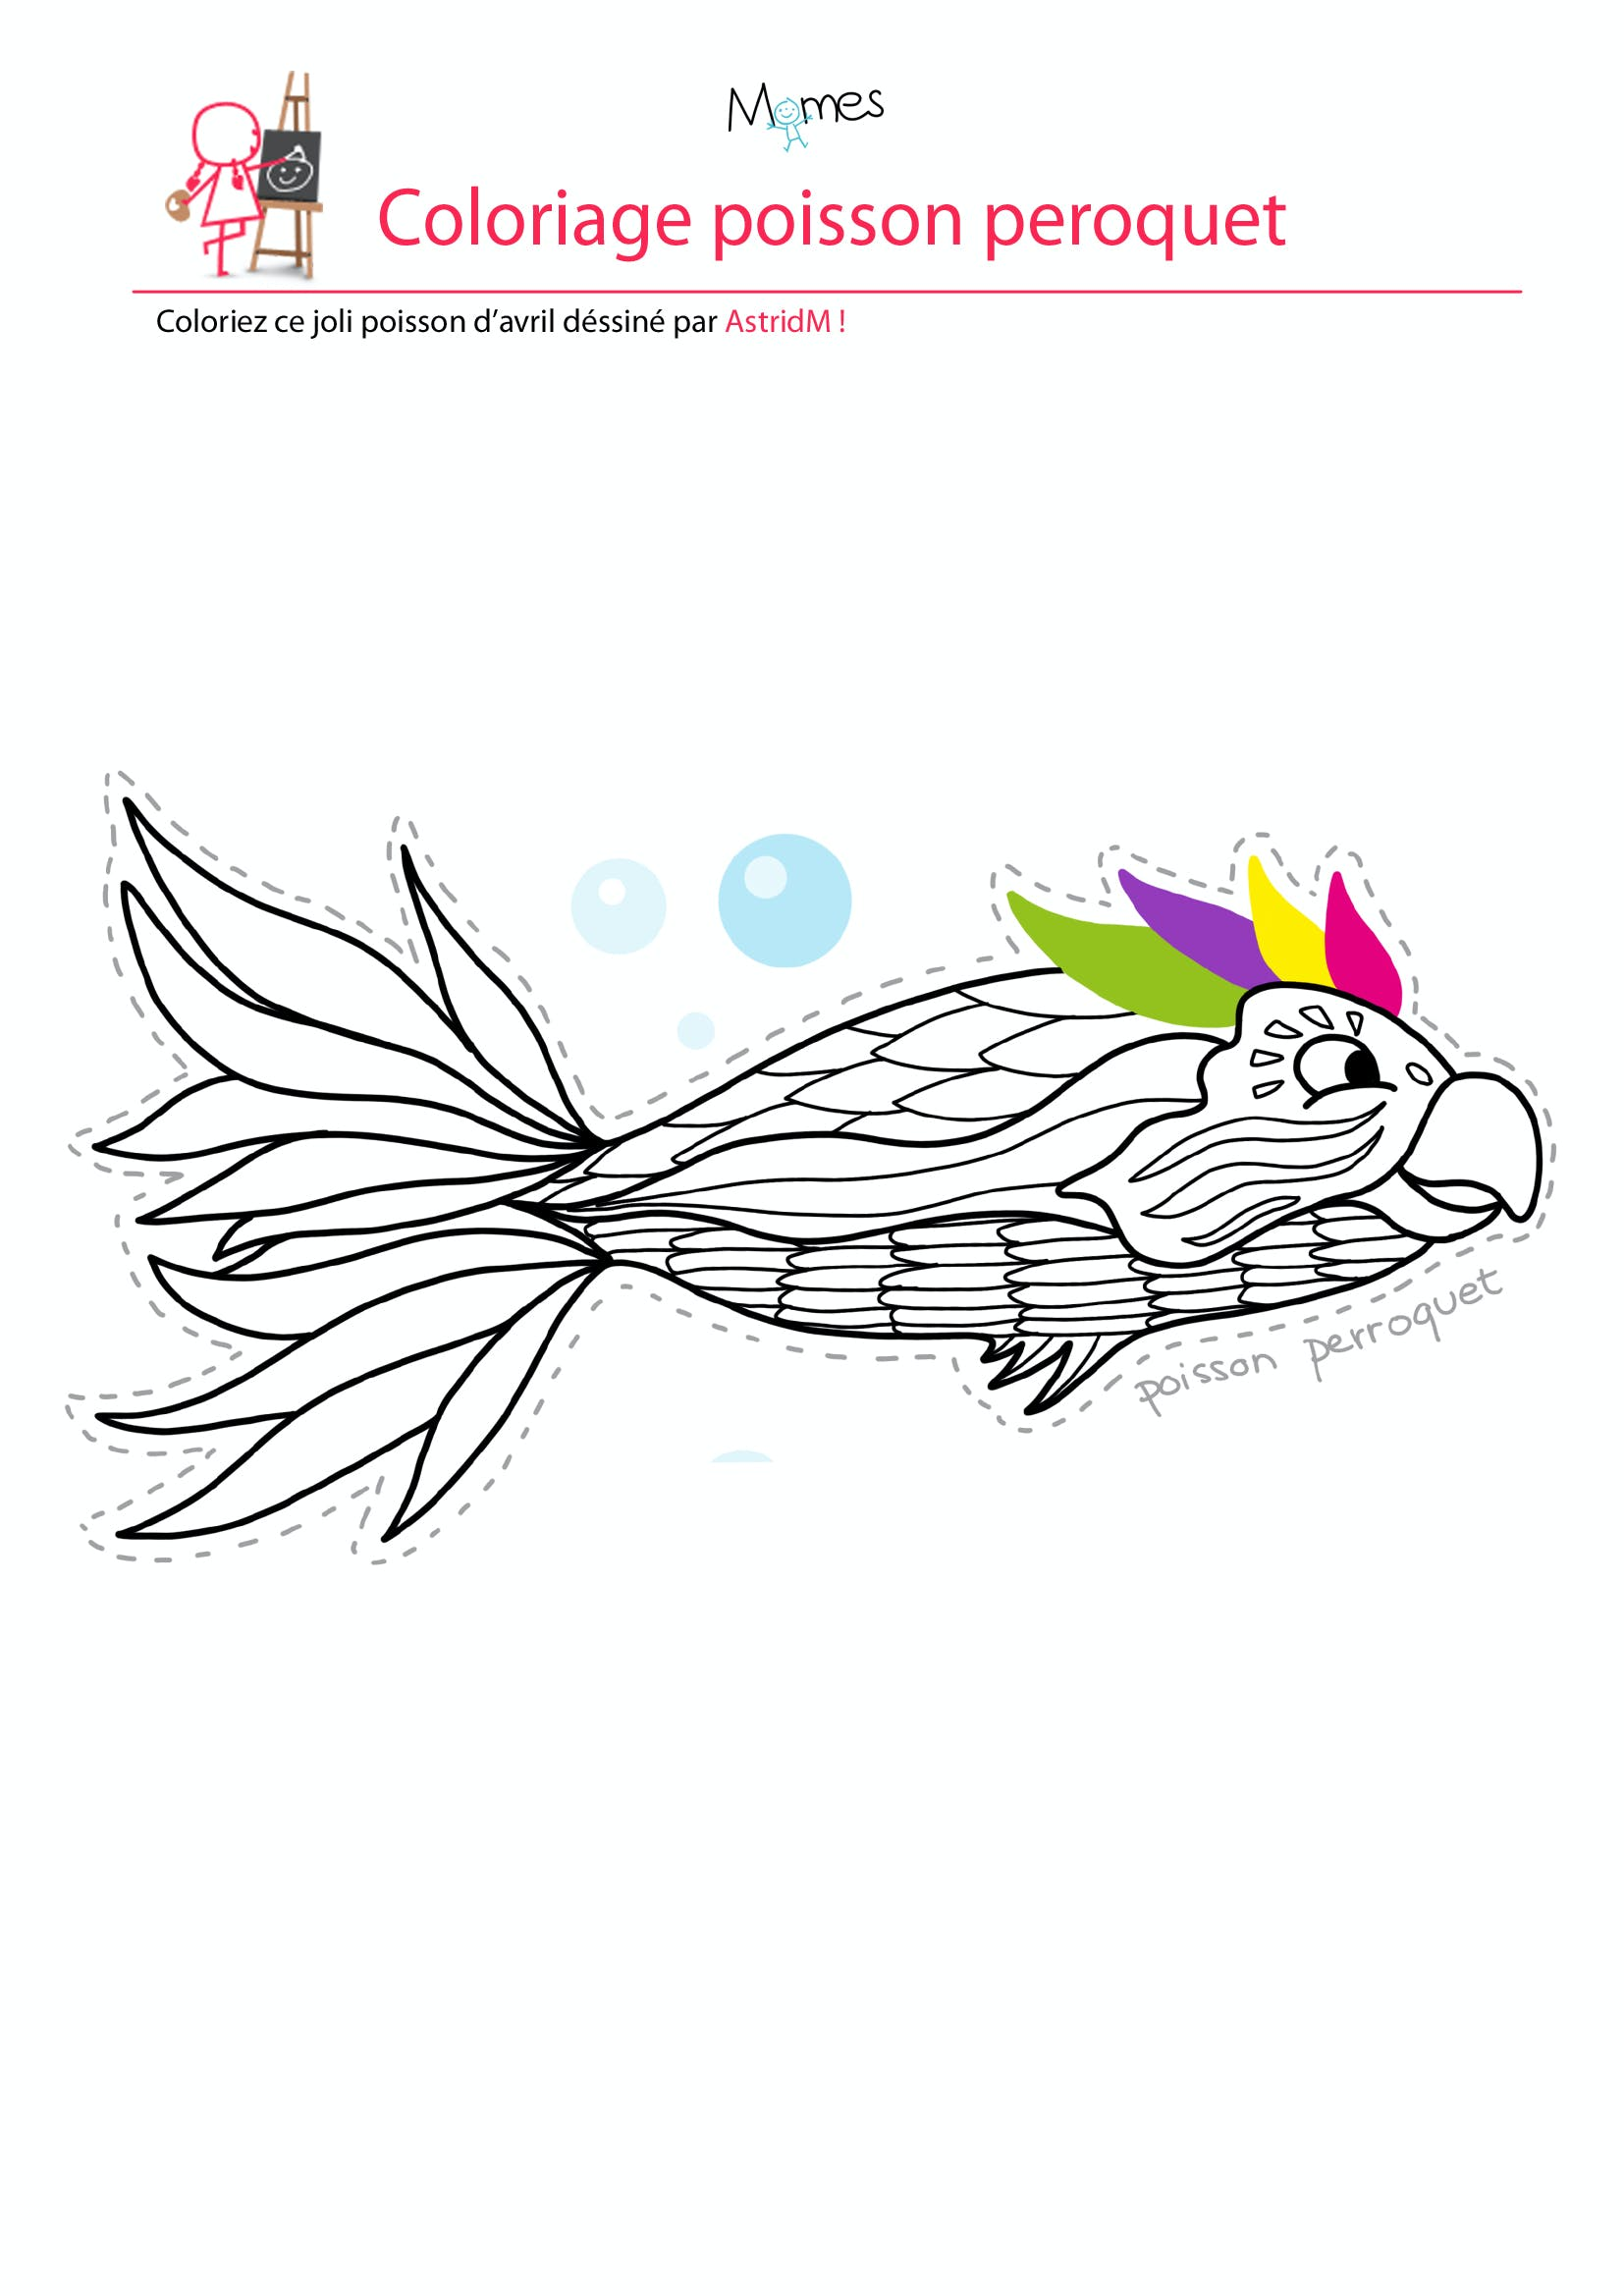 Coloriage poisson d'avril : le poisson perroquet